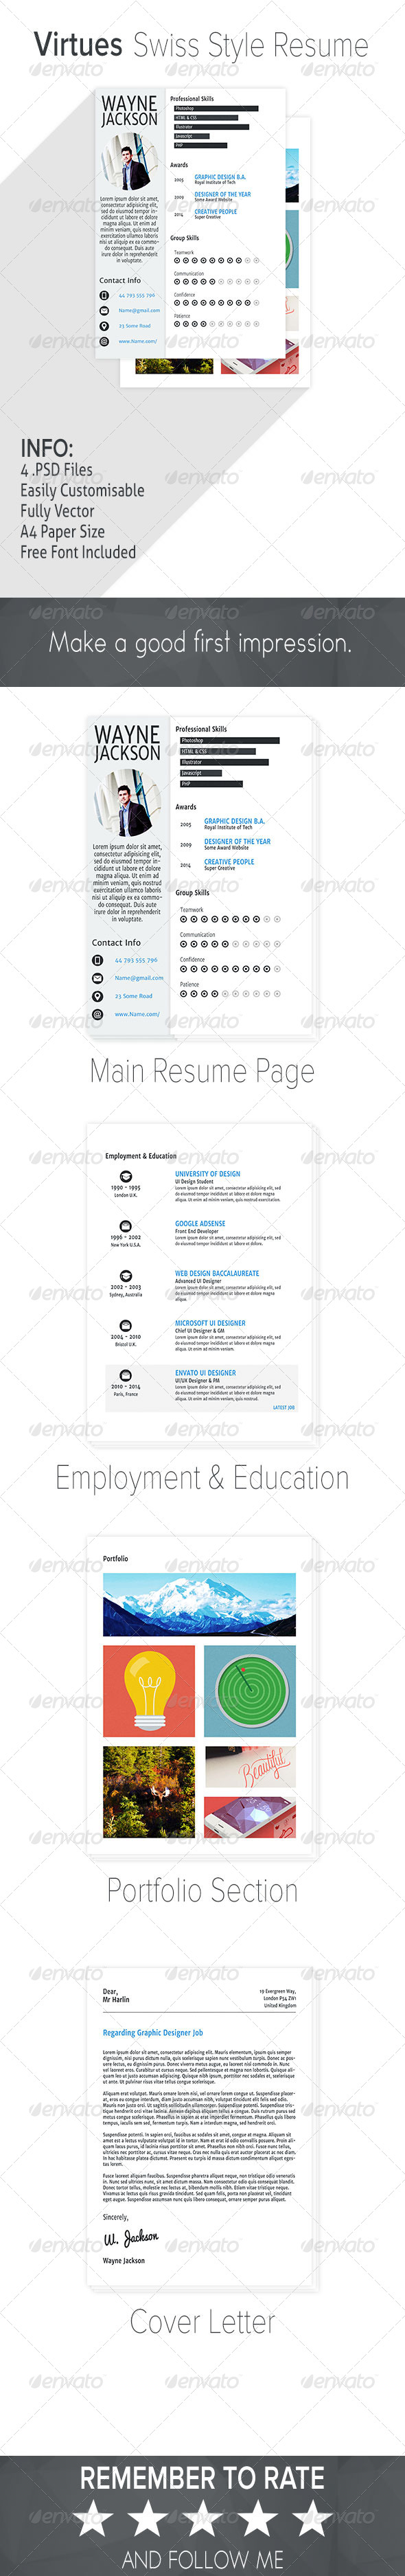 GraphicRiver Virtues Swiss Style Resume 7489967